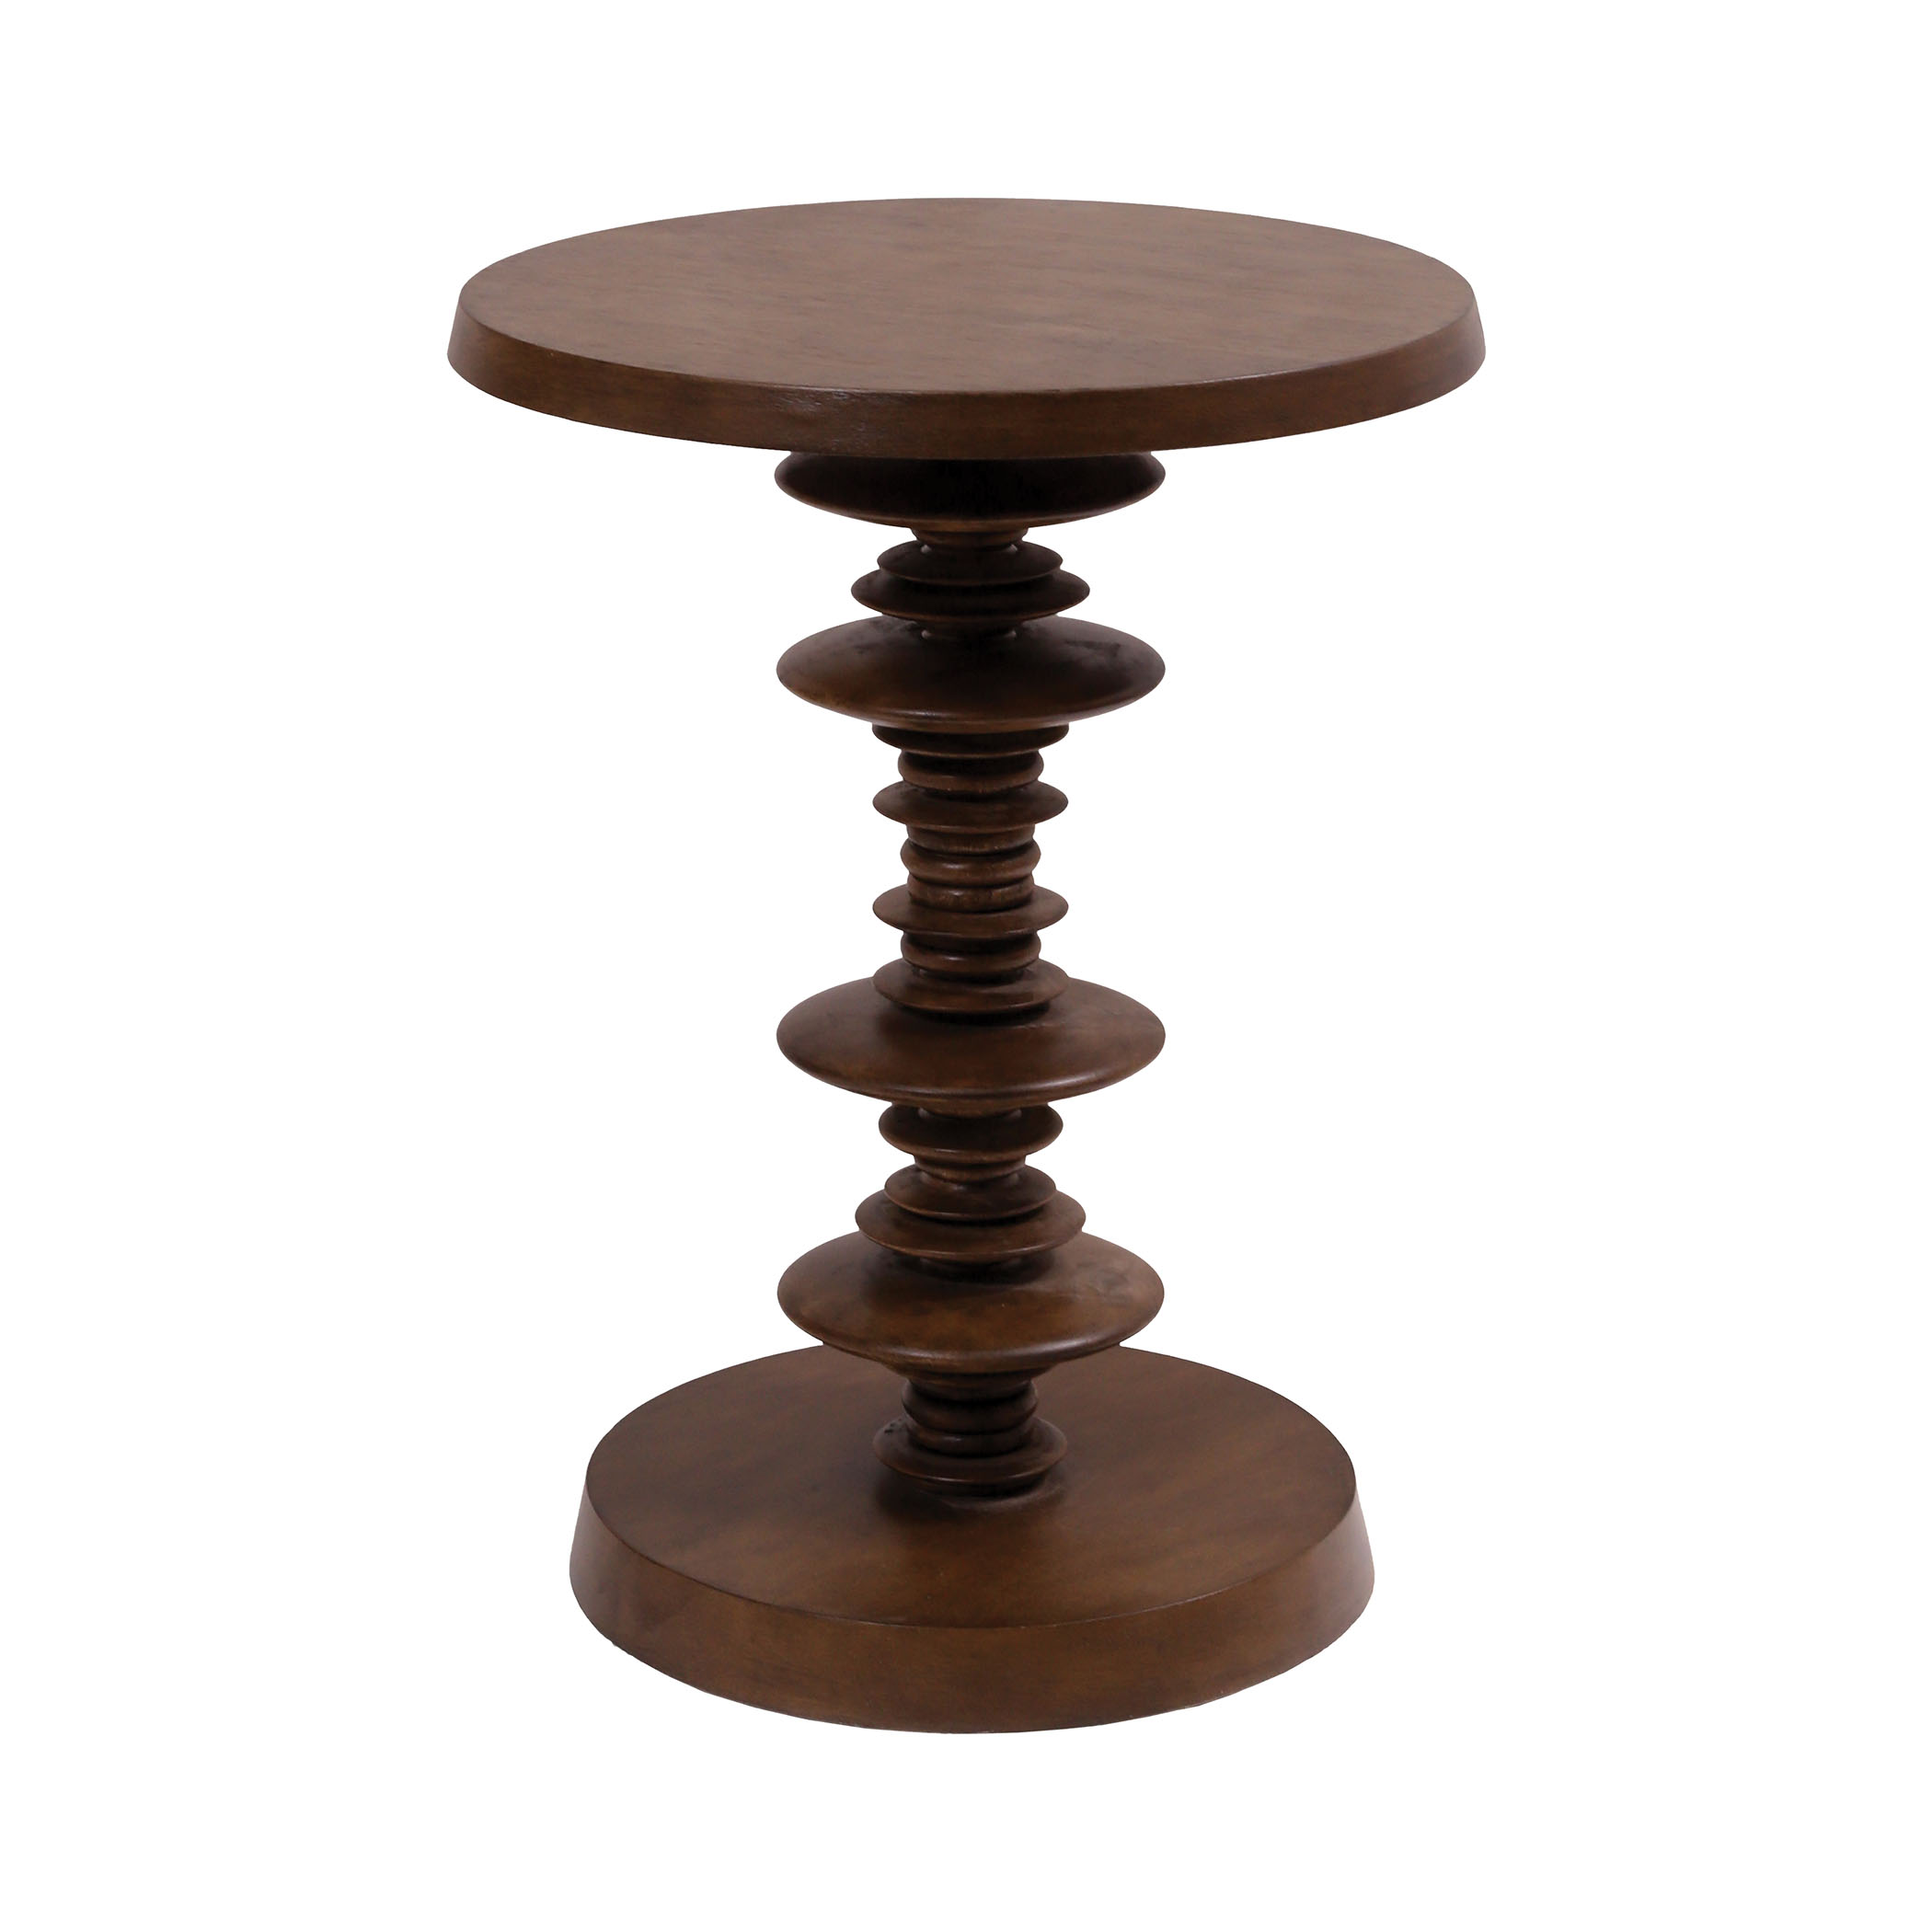 Spun Accent Table in Dark Stain | Elk Home